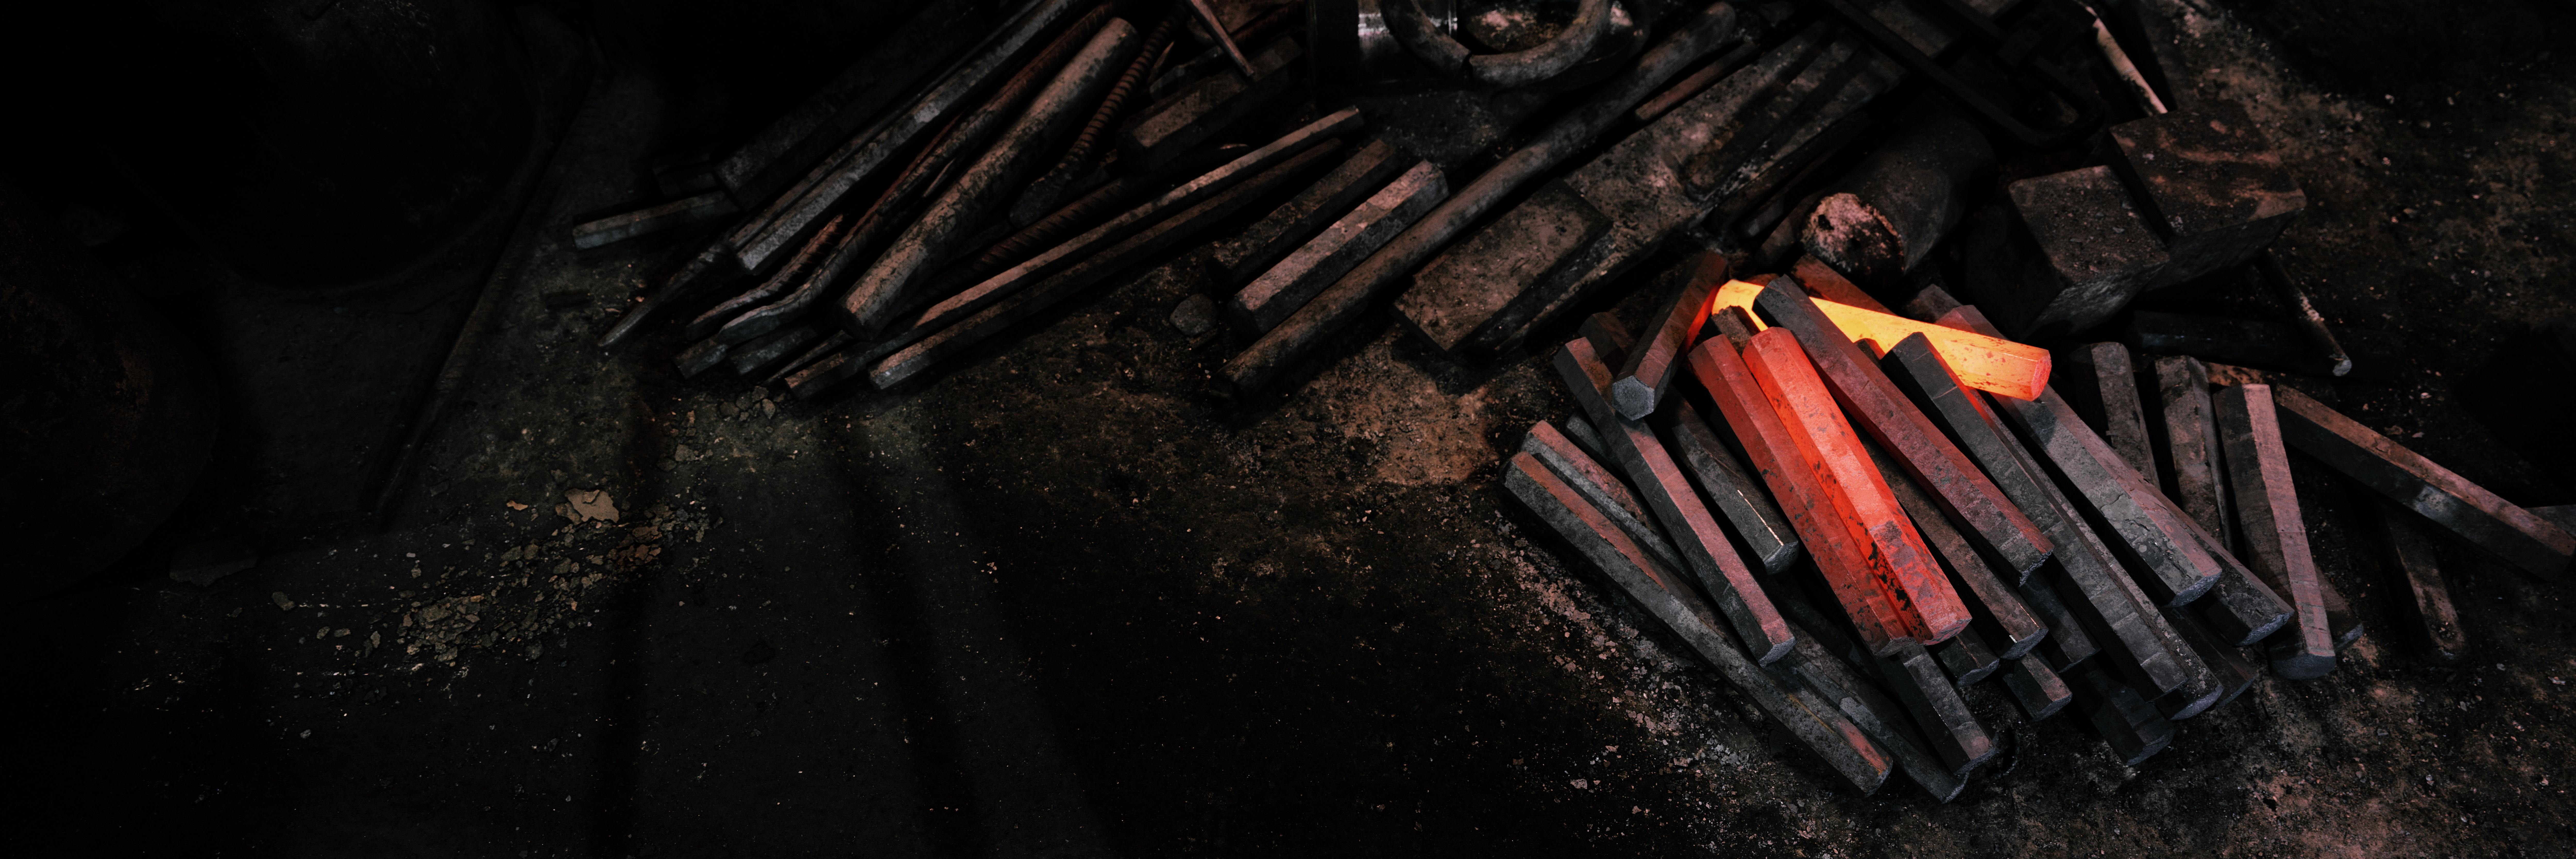 Steel Rods,Christian Houge,Photographie